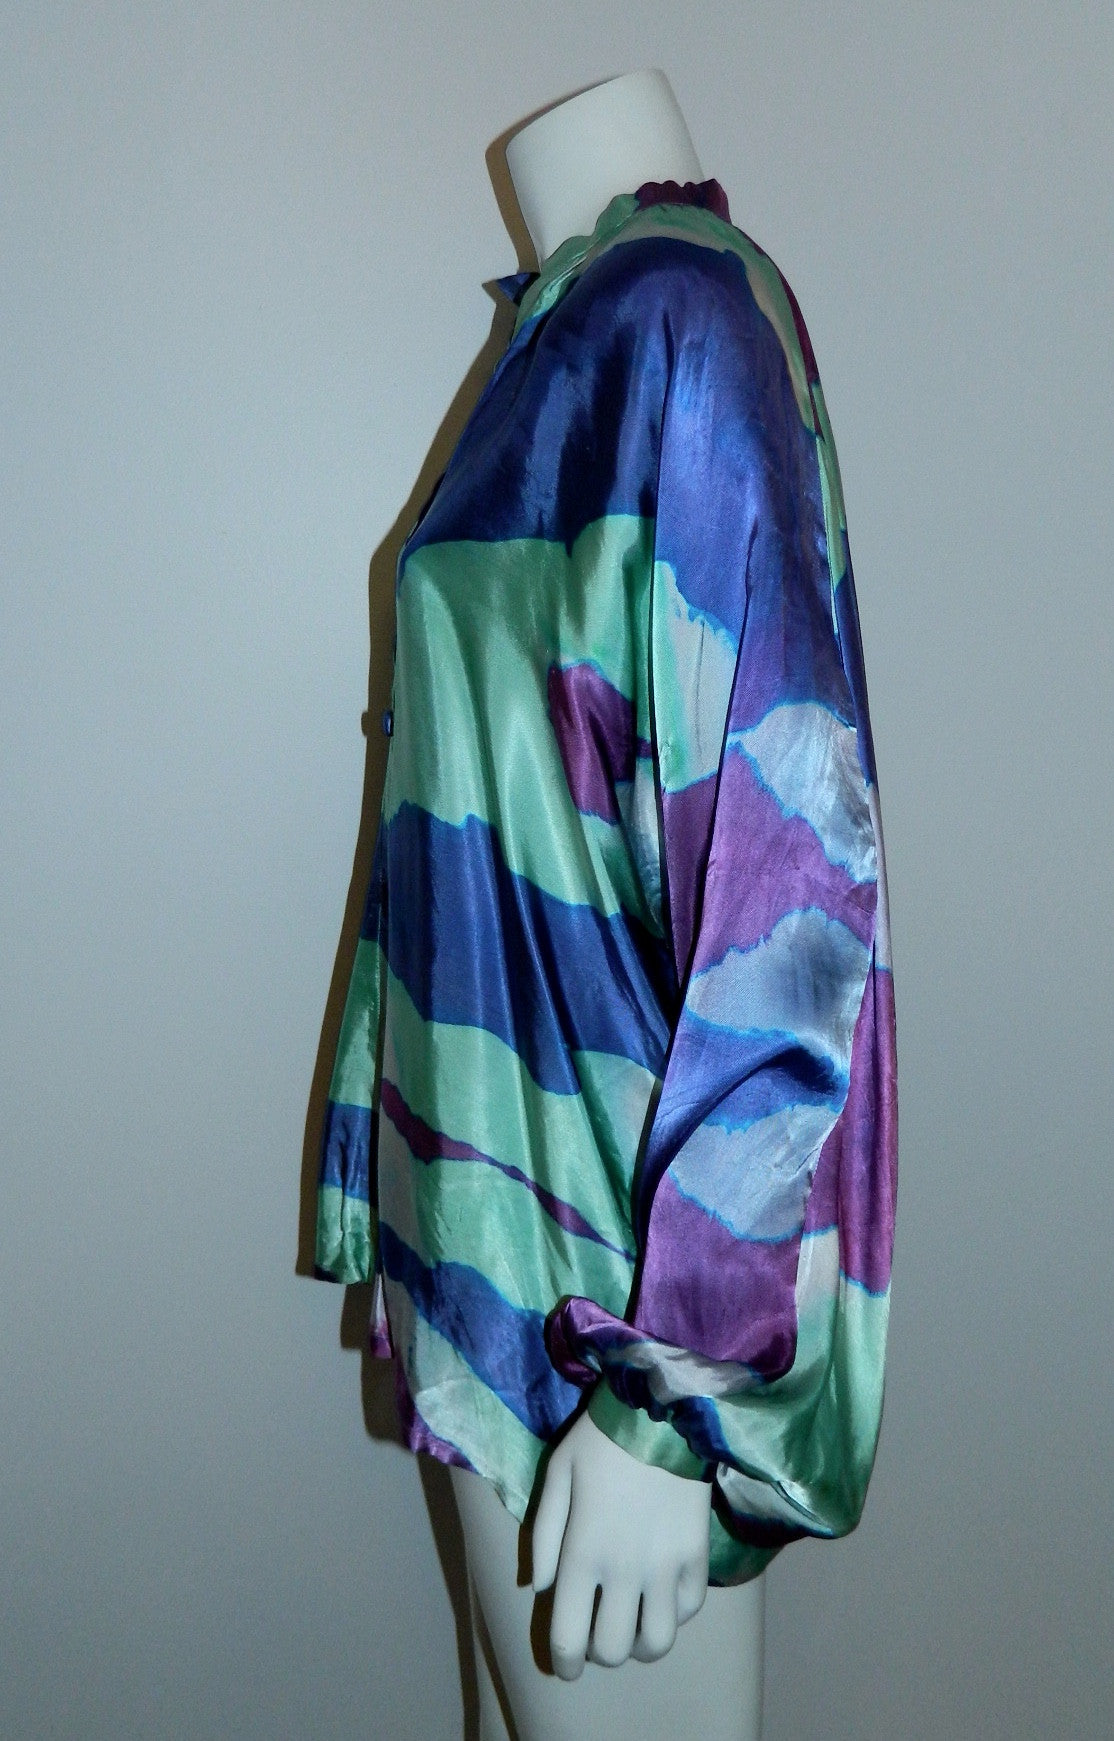 purple waves satin blouse / 1970s hand dyed vintage top / artist made OOAK